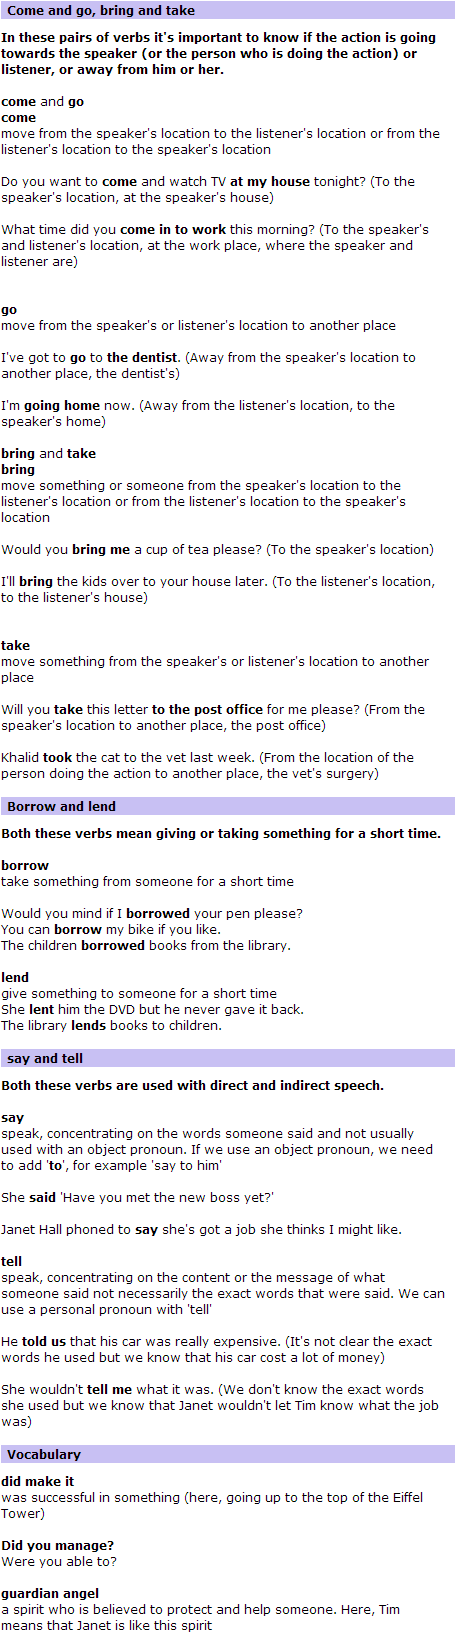 BBC World Service   Learning English   The Flatmates   Language Point 110(3)